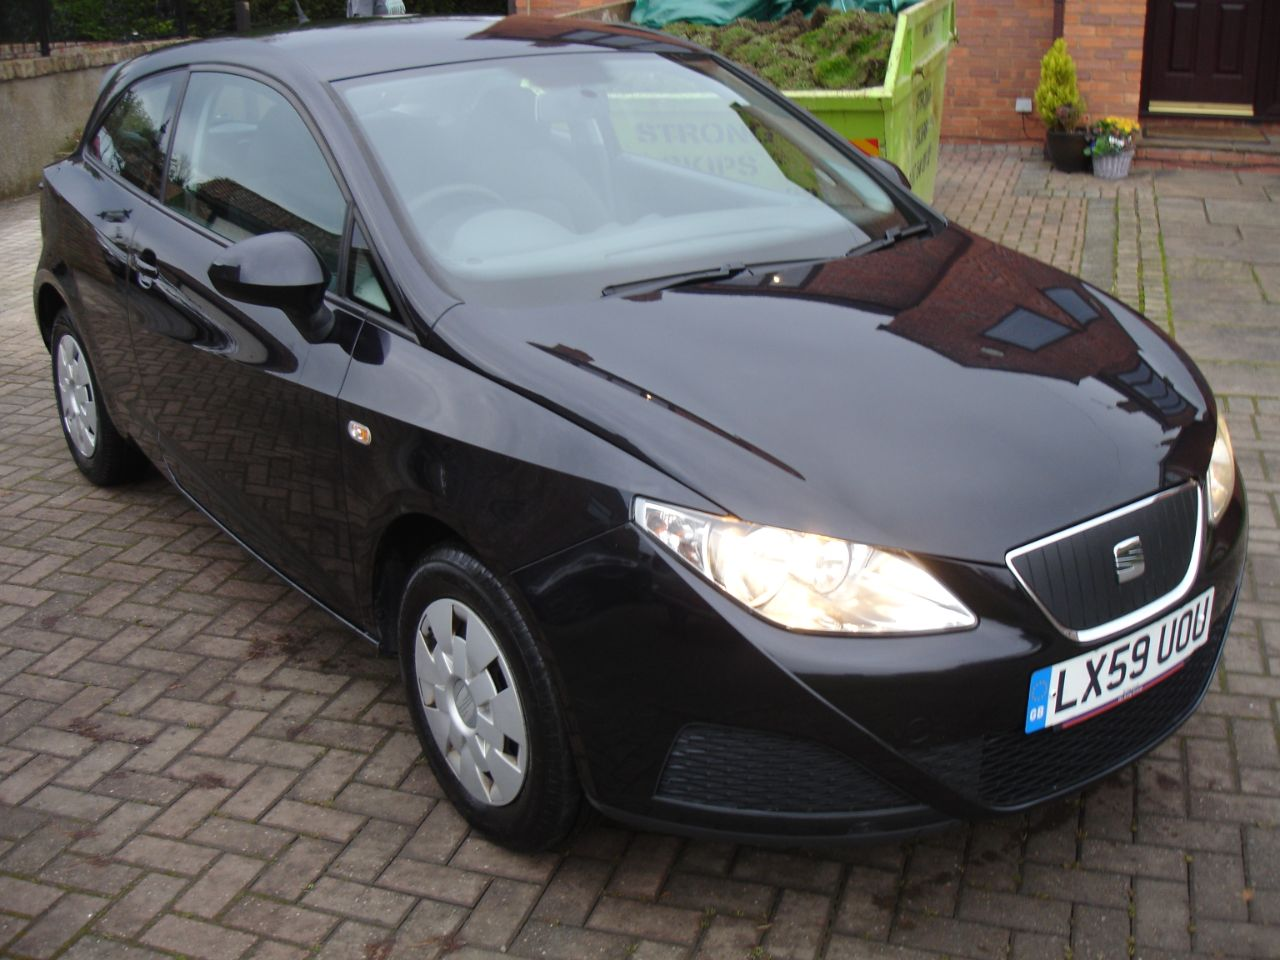 SEAT Ibiza 1.4 TDI 80ps Ecomotive 3dr Hatchback Diesel Black at Level Pitch Selby